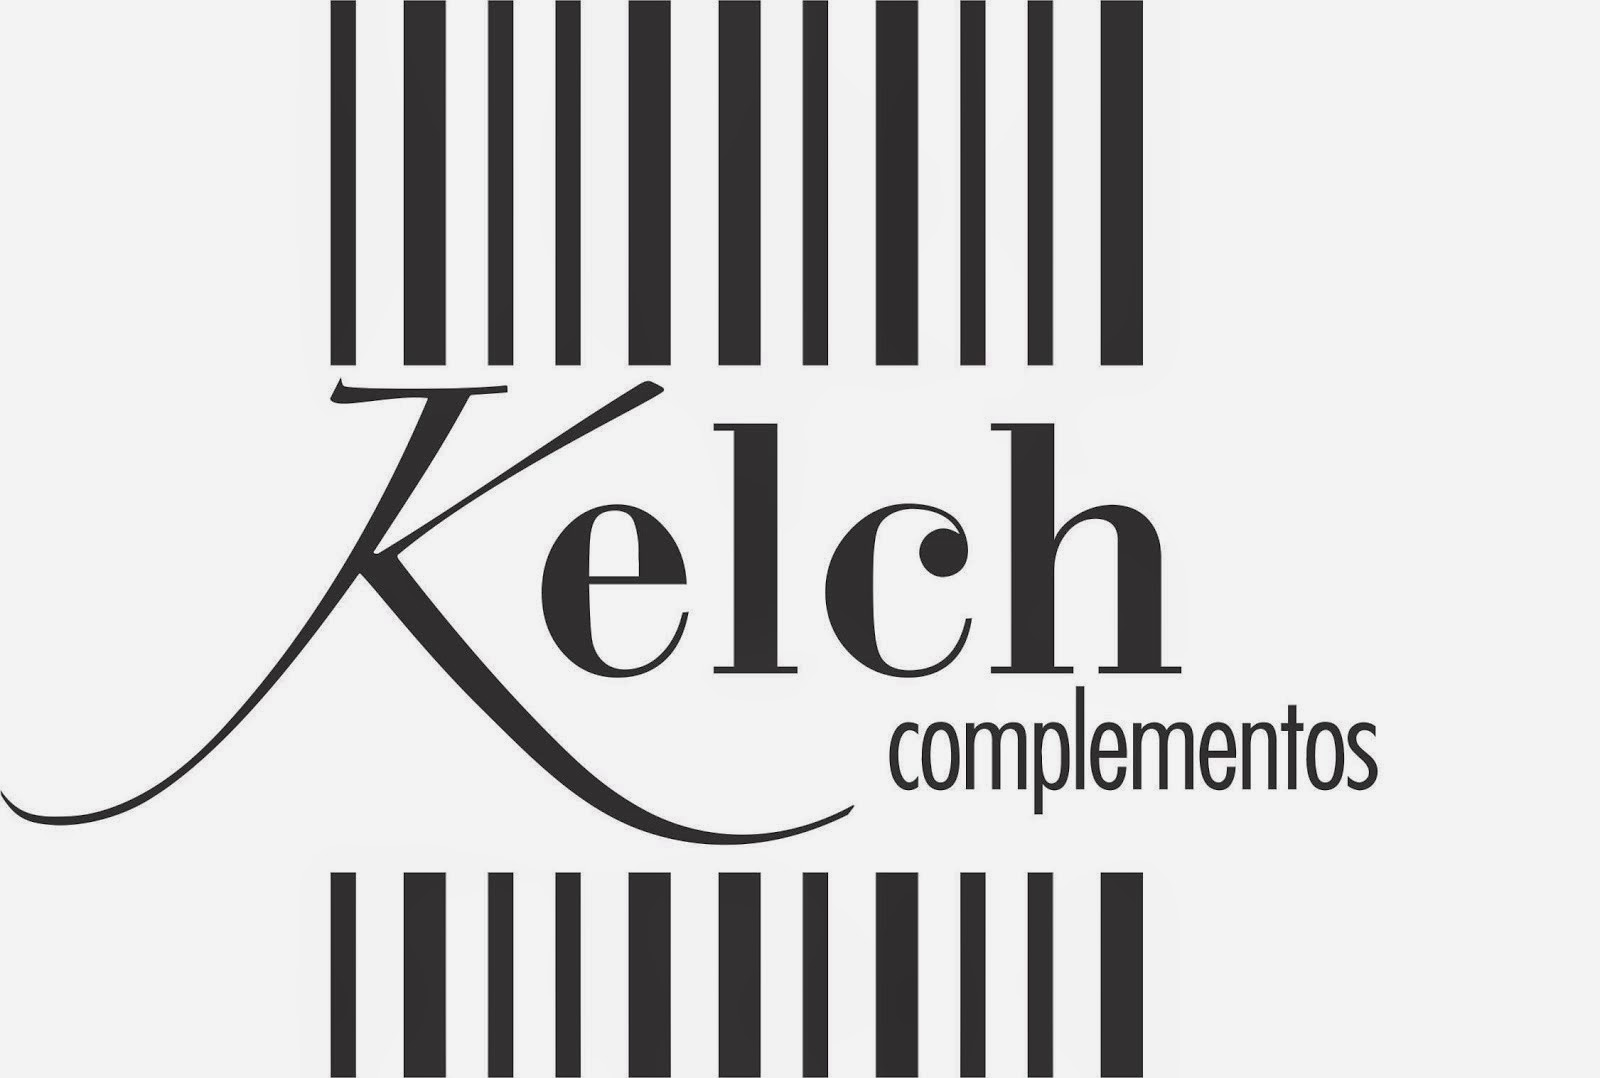 Kelch complementos